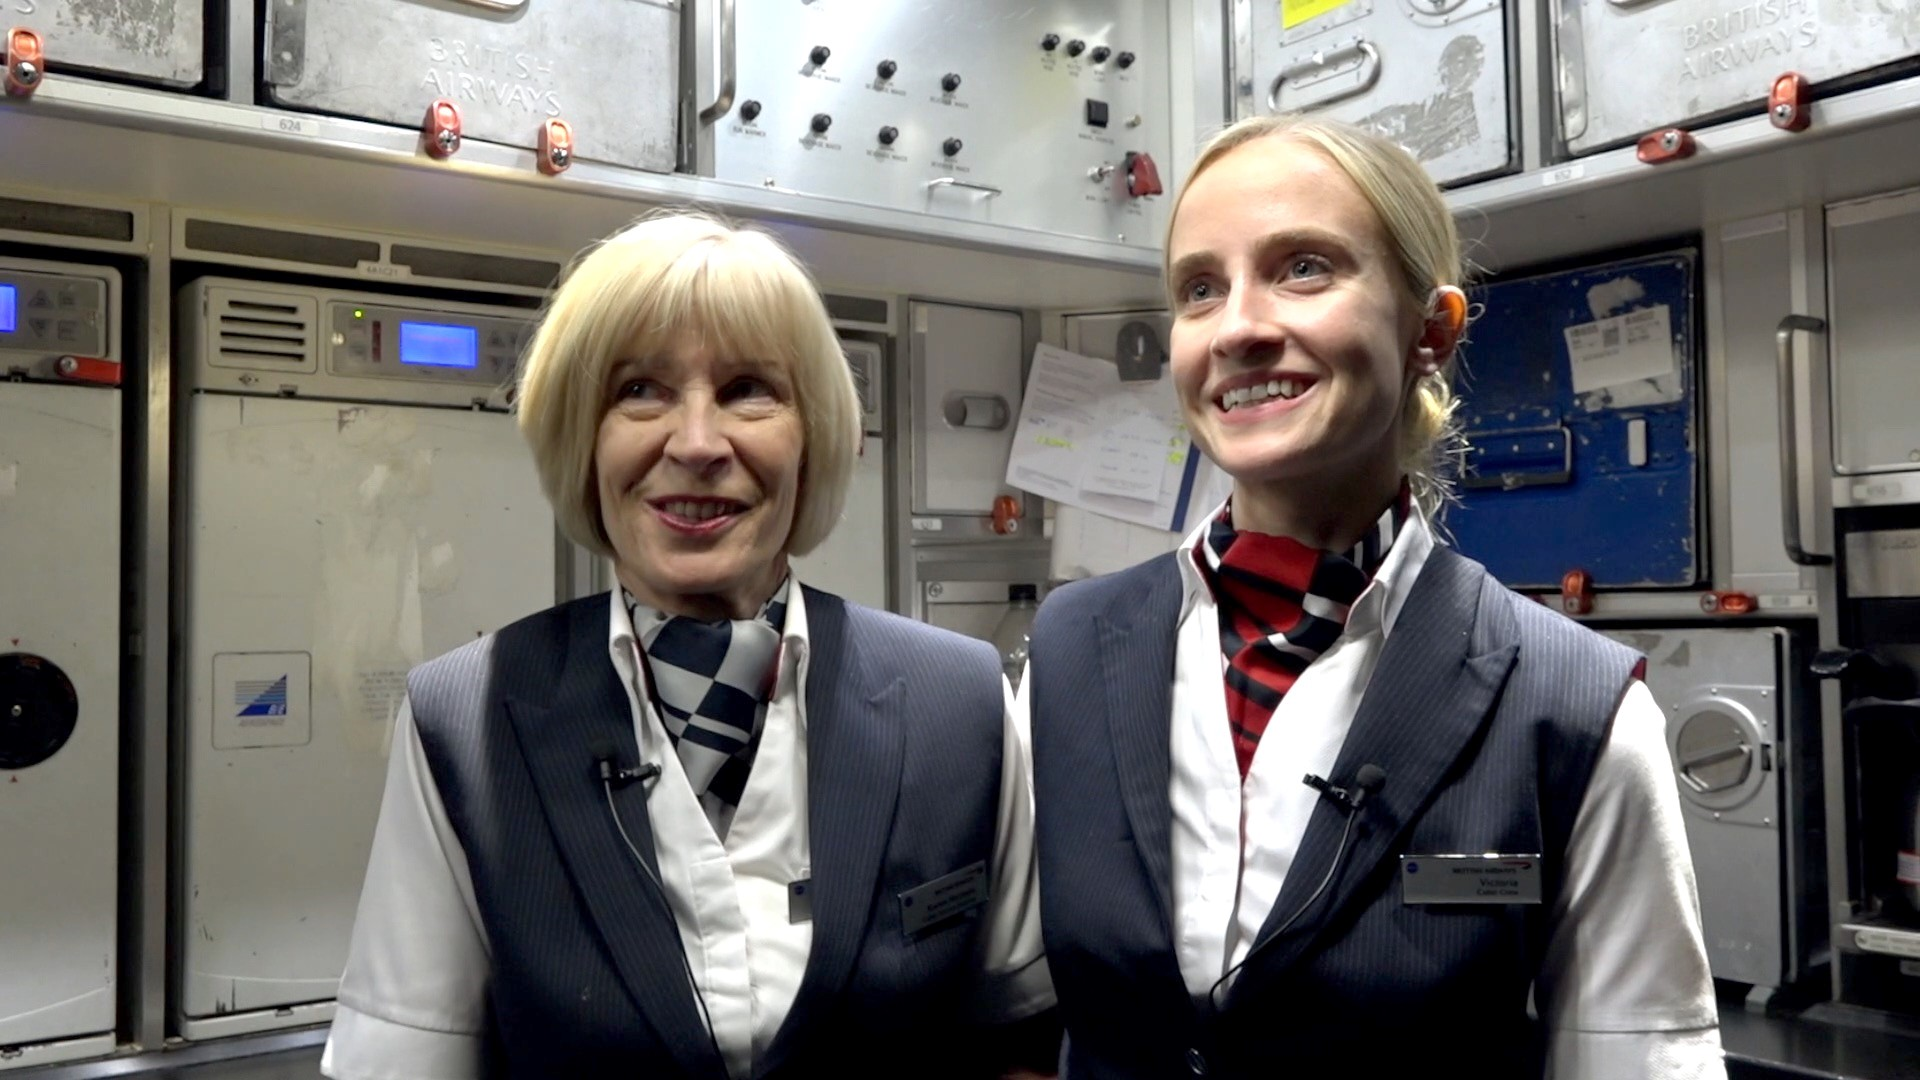 Family flight in the cabin - cabin crew